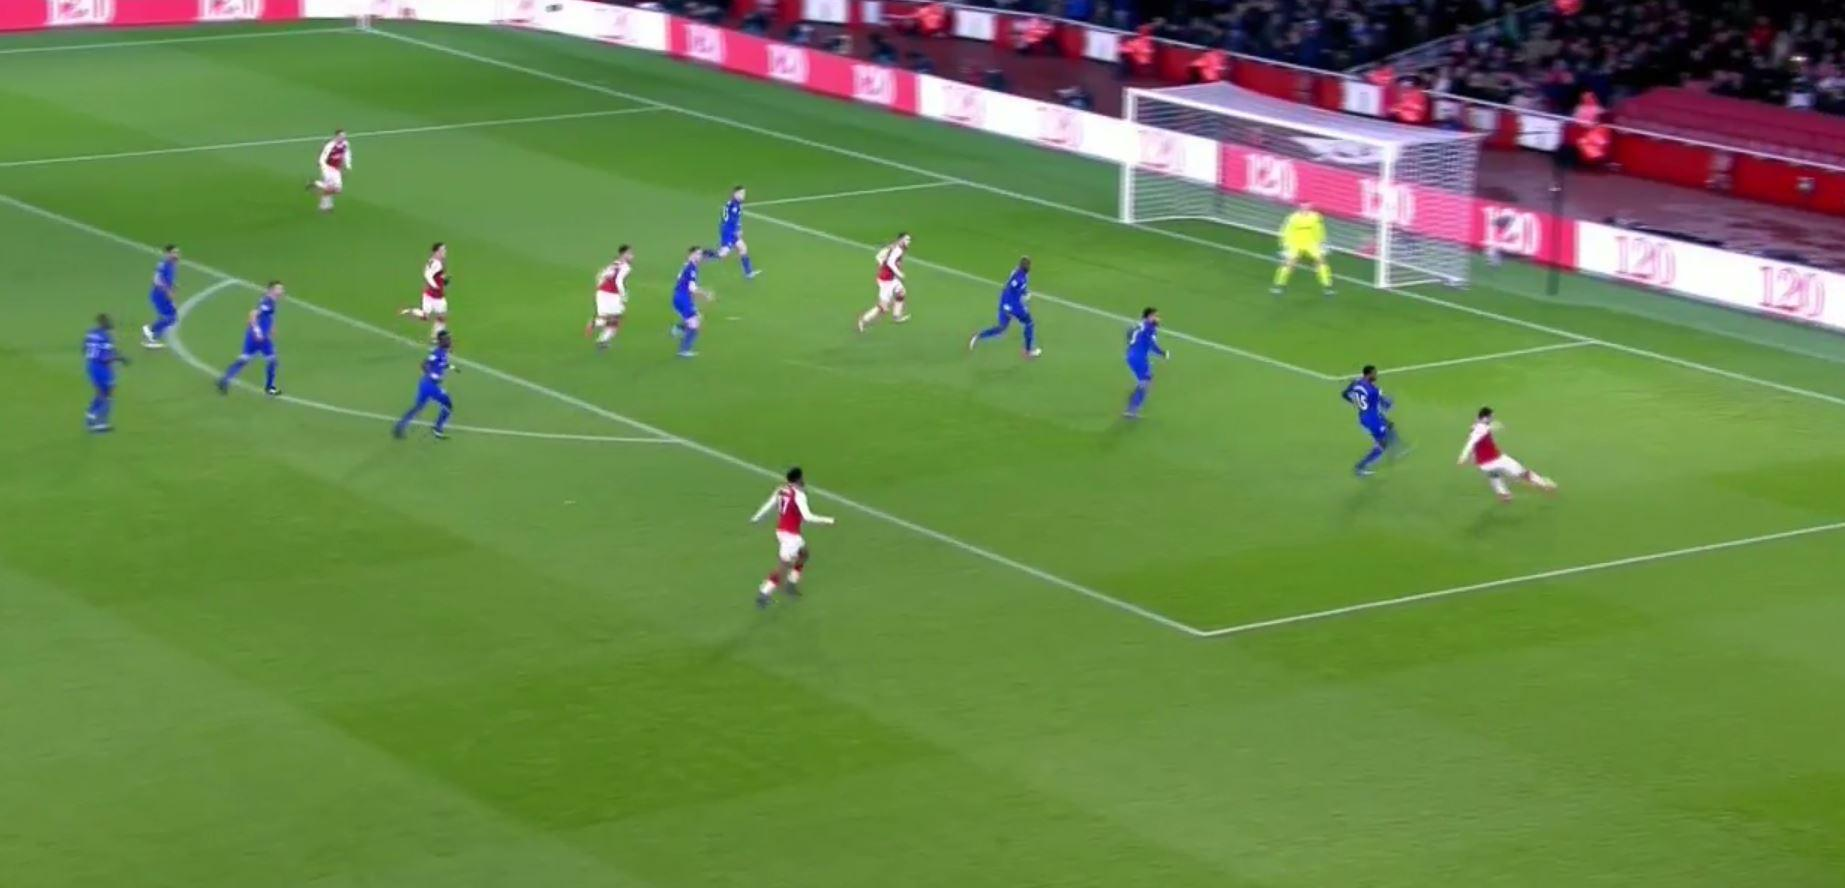 Then picked out Ramsey in the middle